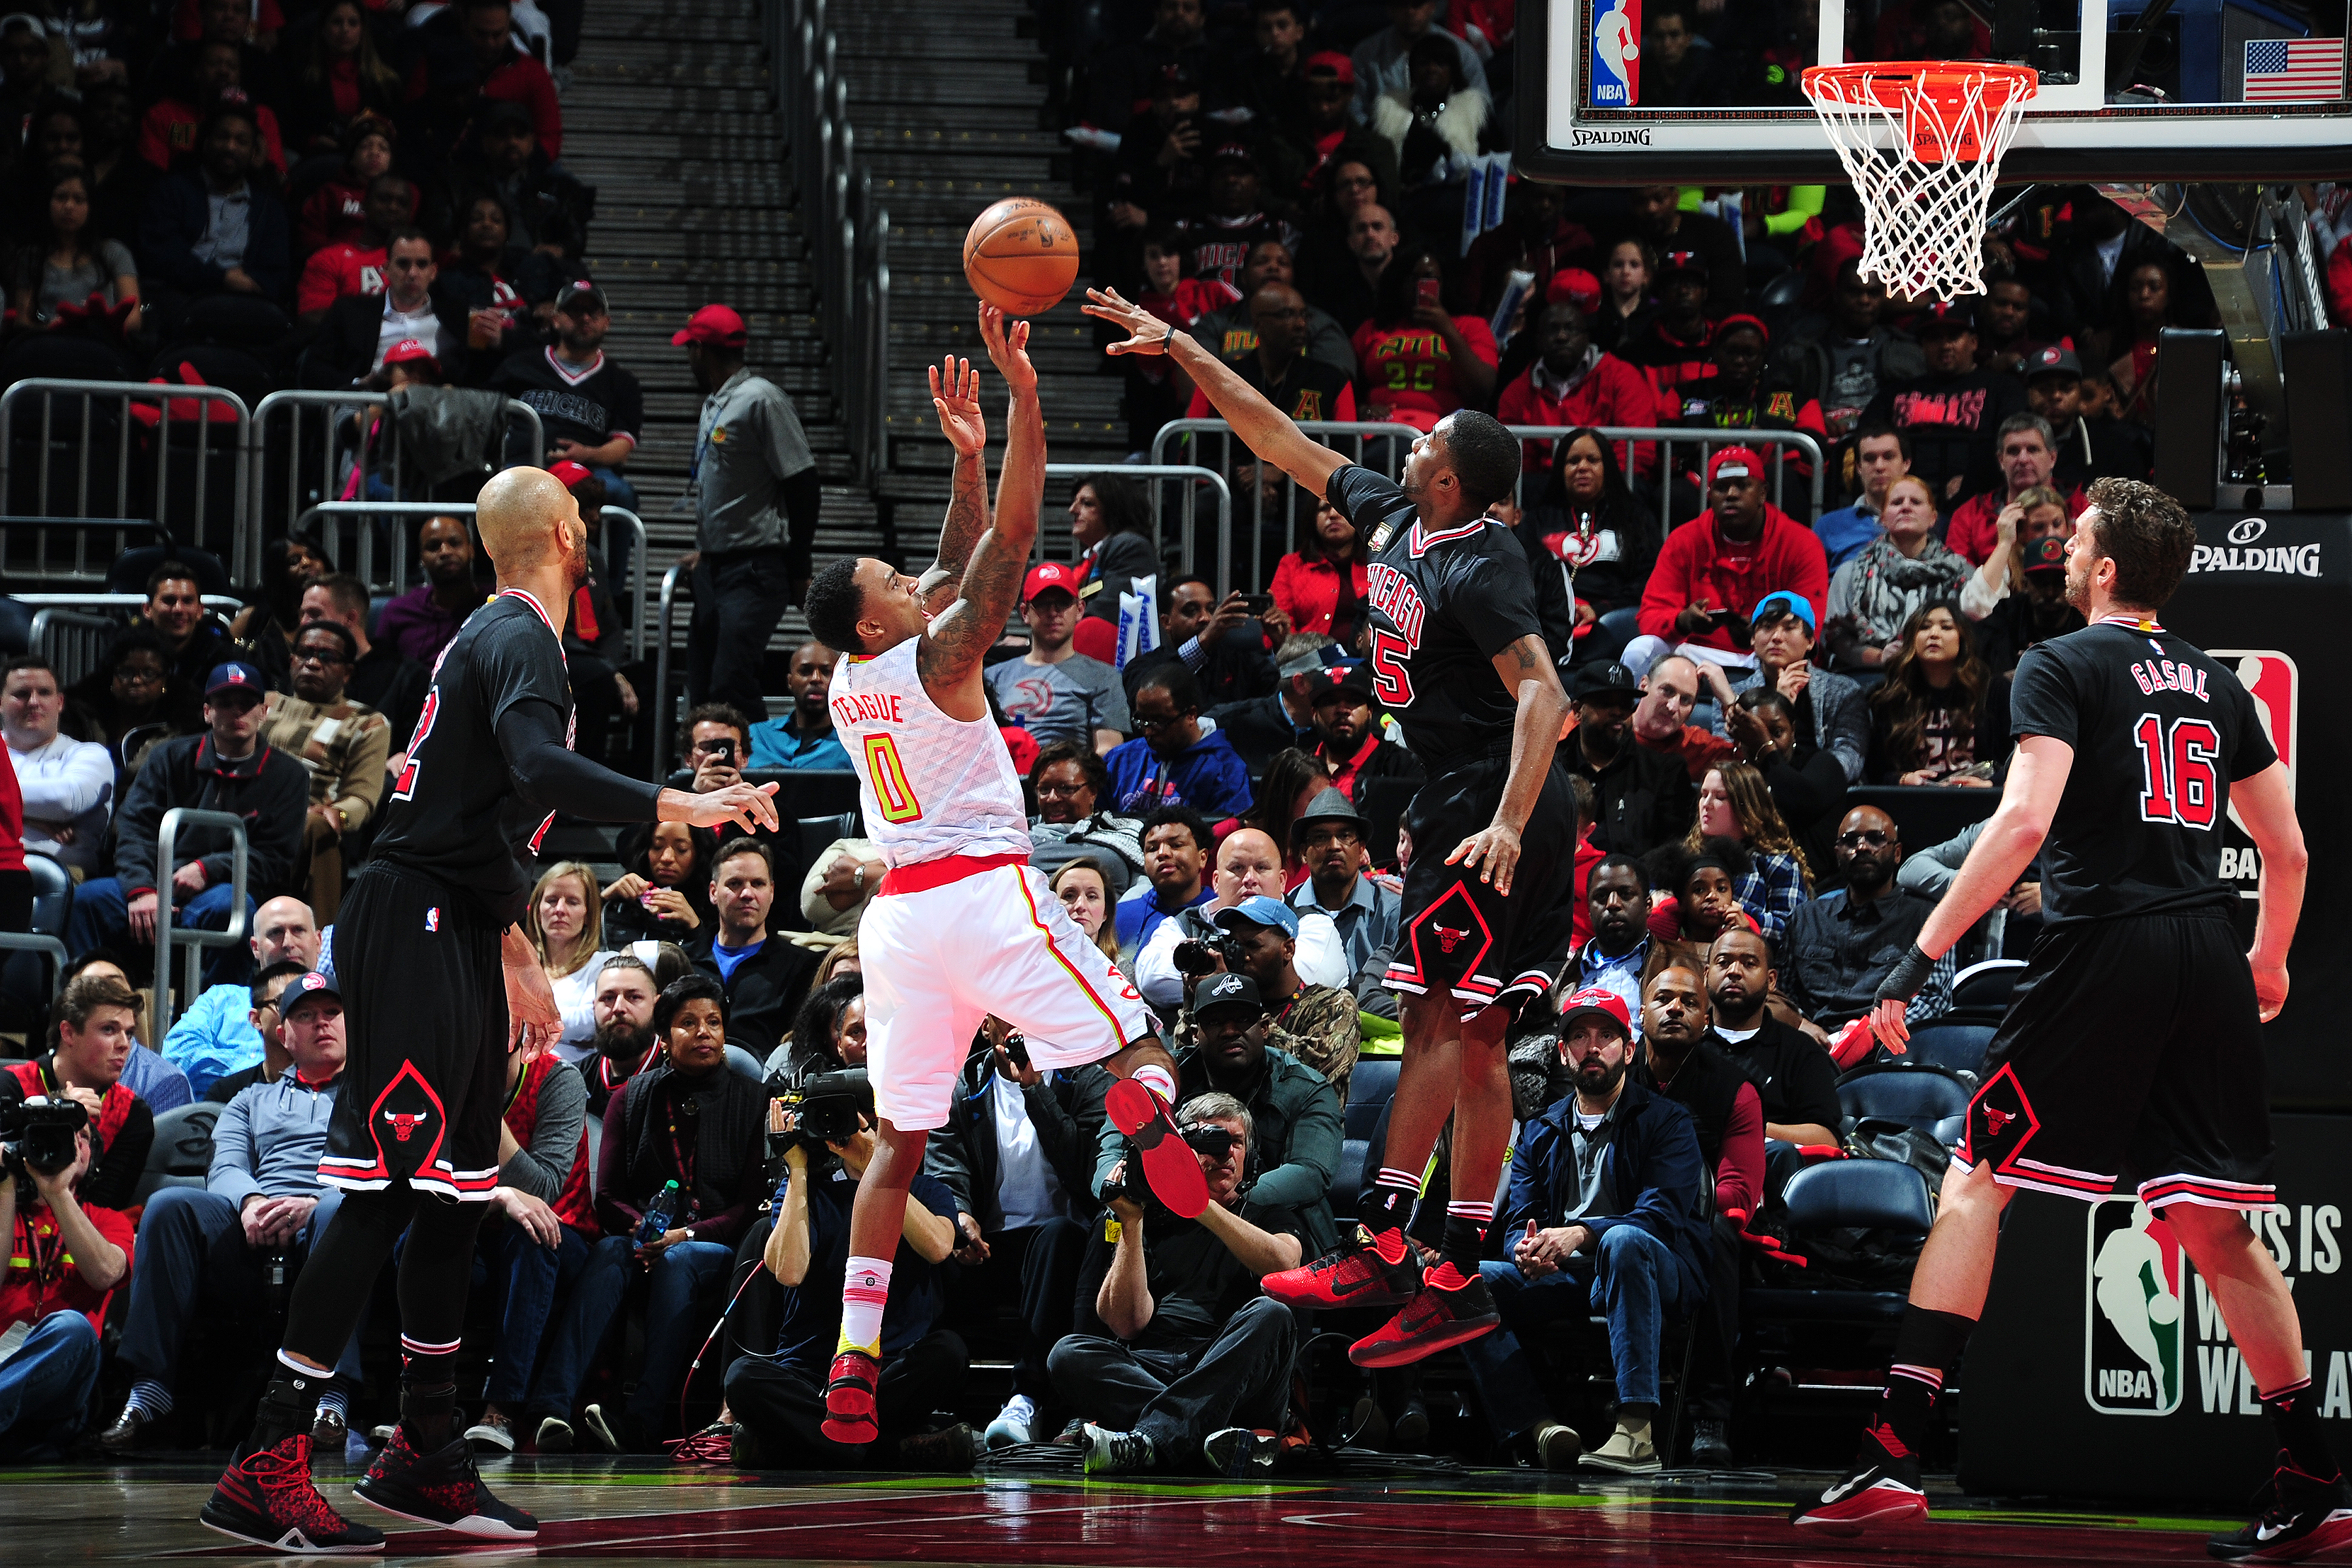 ATLANTA, GA - FEBRUARY 26: Jeff Teague #0 of the Atlanta Hawks shoots the ball during the game against the Chicago Bulls on February 26, 2016 at Philips Arena in Atlanta, Georgia.  (Photo by Scott Cunningham/NBAE via Getty Images)